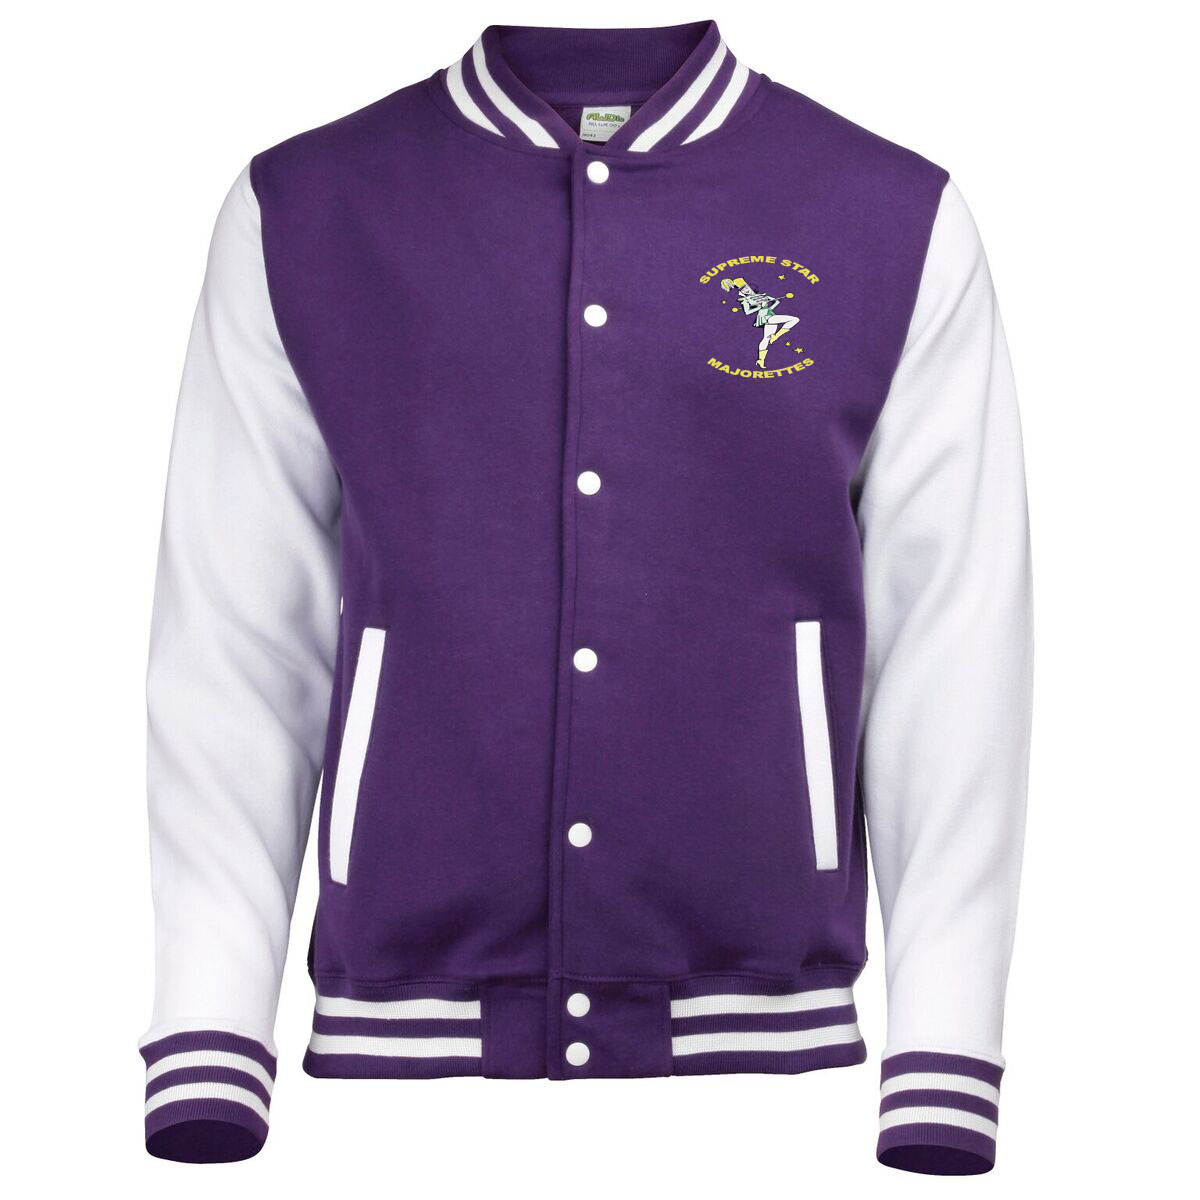 Team Supreme Baseball Jacket